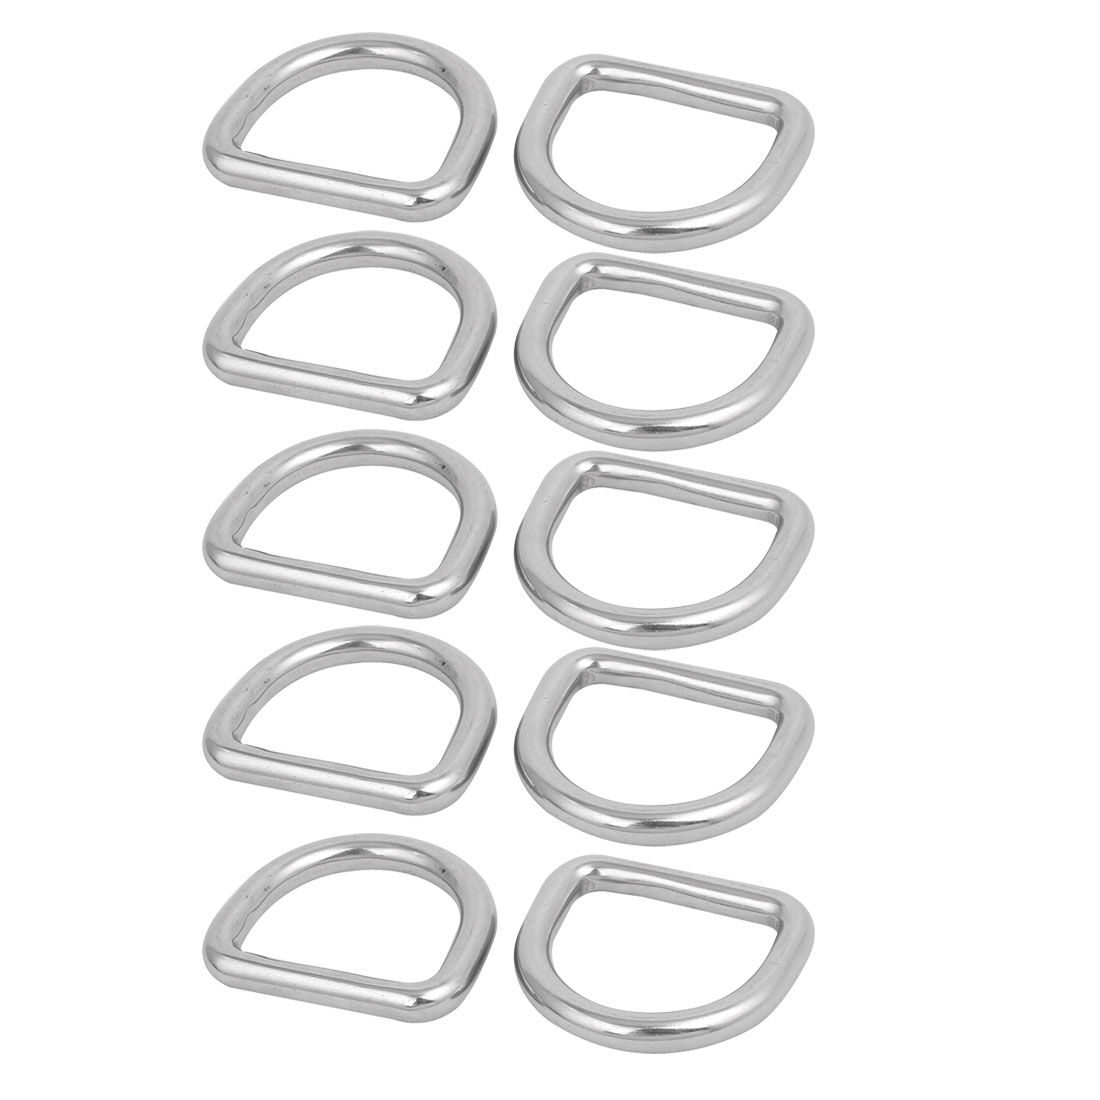 Unique Bargains 6mmx30mmx27mm 304 Stainless Steel Flat Typed D Welded Ring Silver Tone 10pcs - image 2 of 2